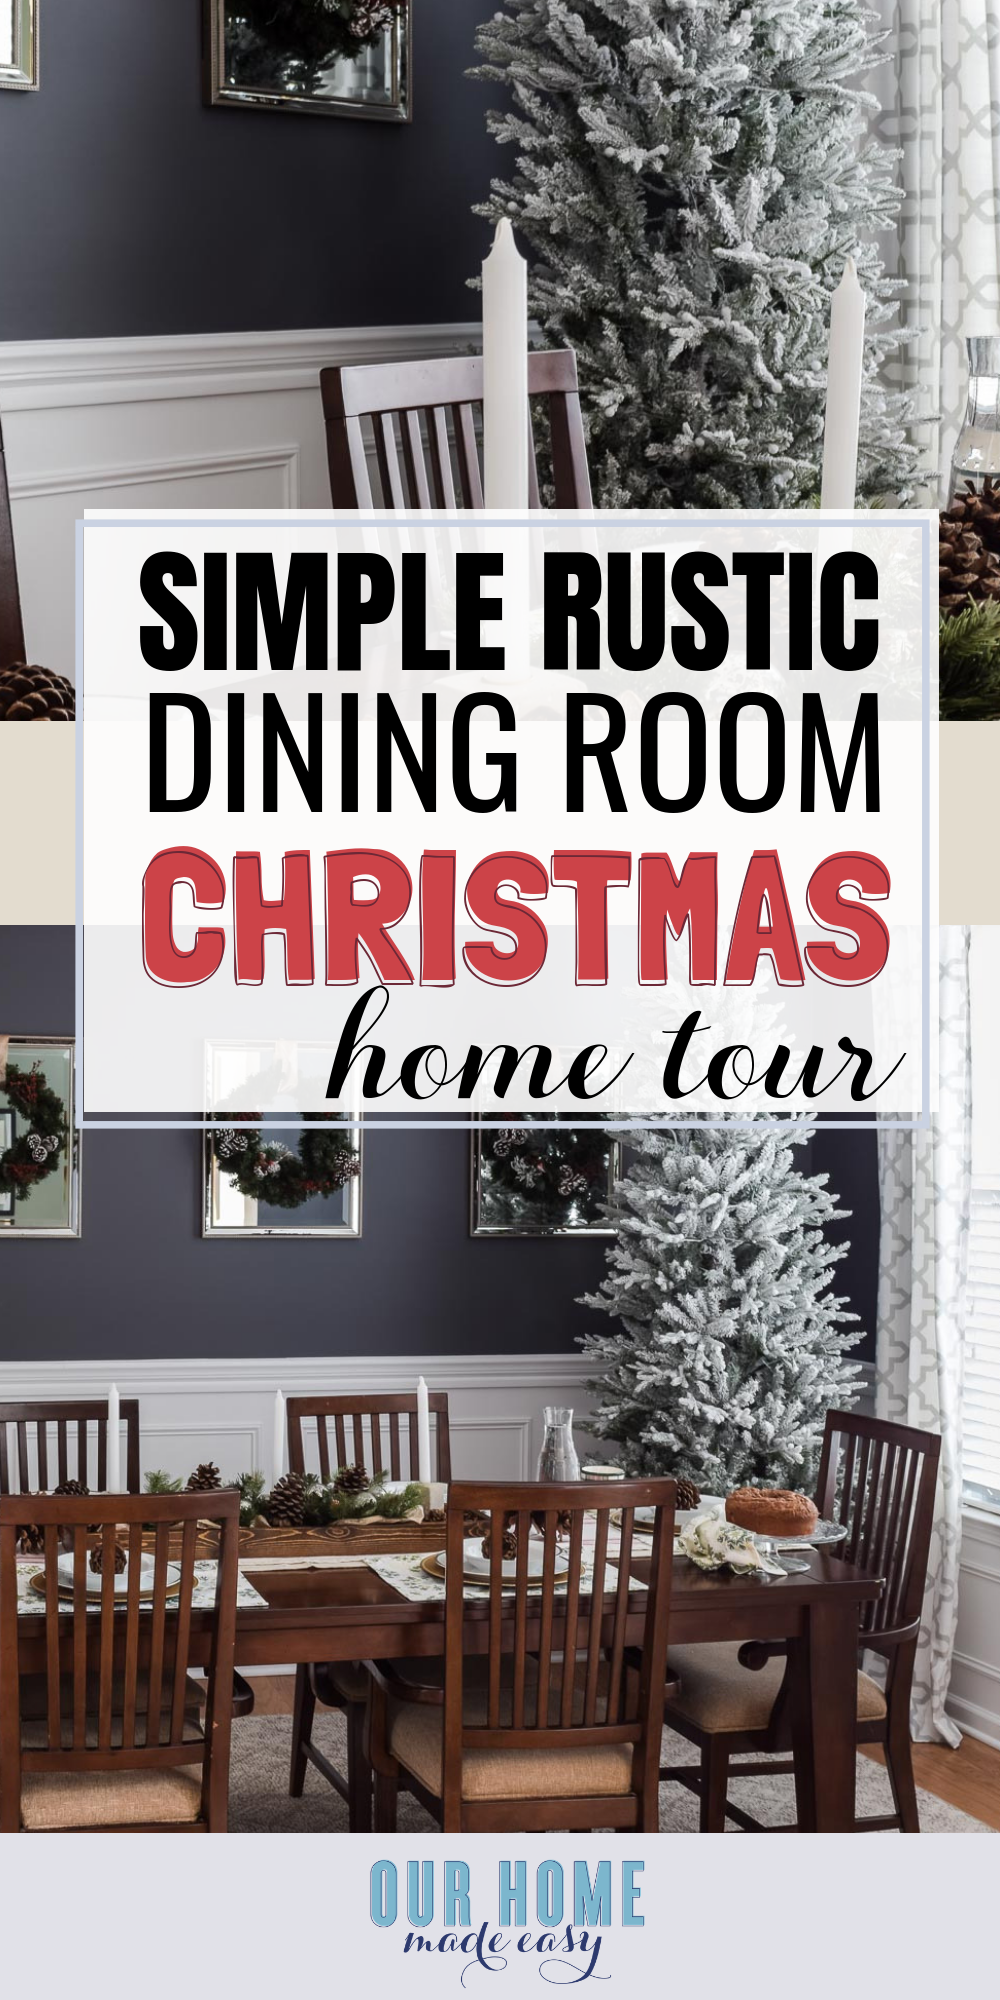 Simple Rustic Dining Room Christmas Decor: a tour of our warm and bright dining room decked out for Christmas morning